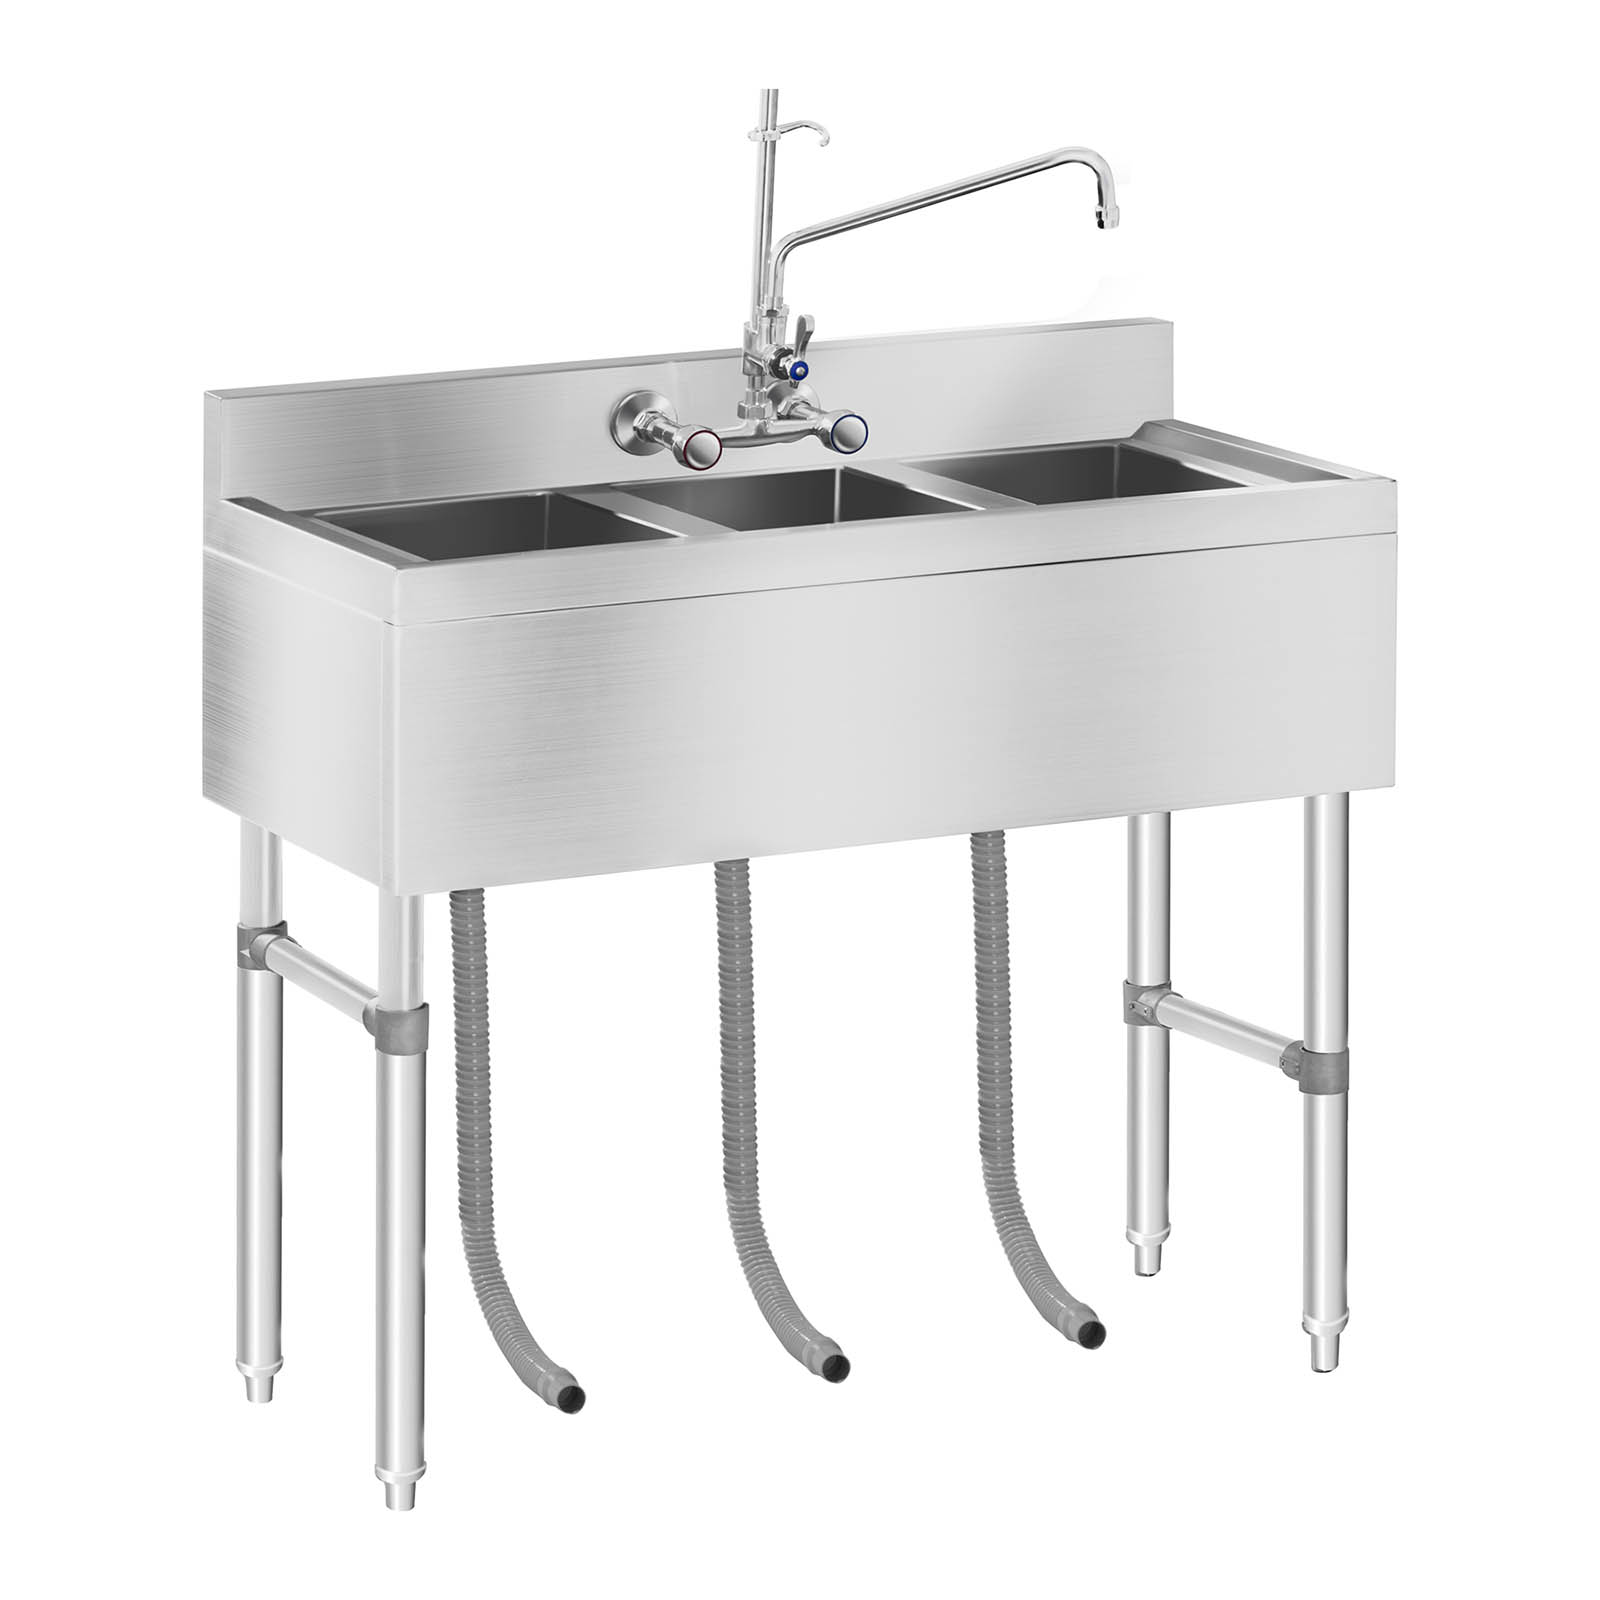 Schrank 2m Breit Commercial Kitchen Sink Three Basin Catering Sink